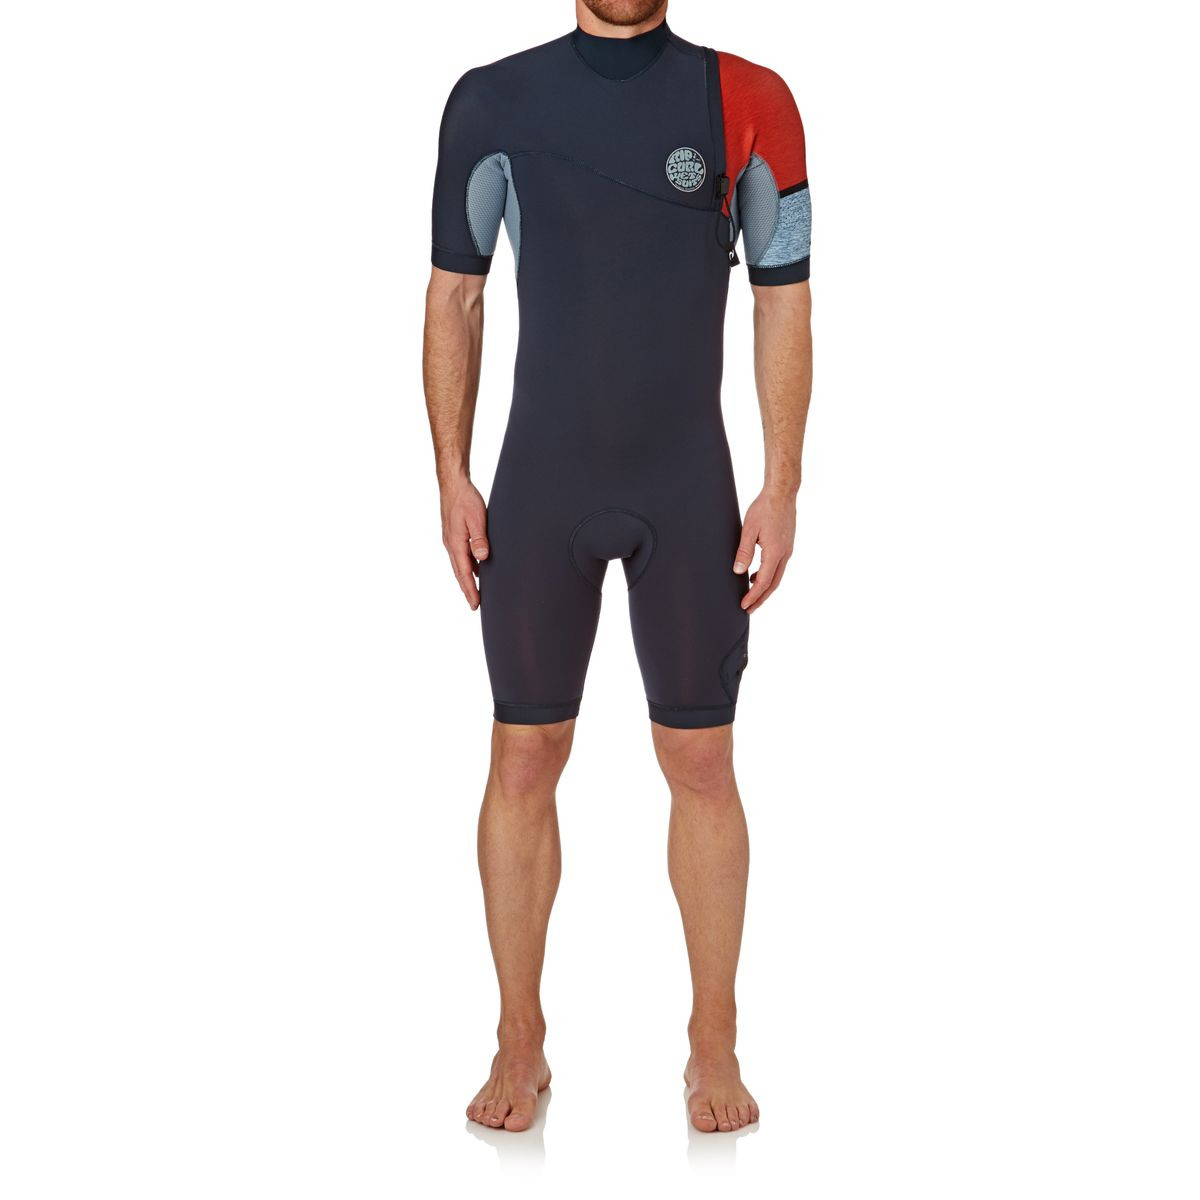 Rip Curl E-bomb Pro 2mm Zipperless Short Sleeve Shorty Wetsuit - Red